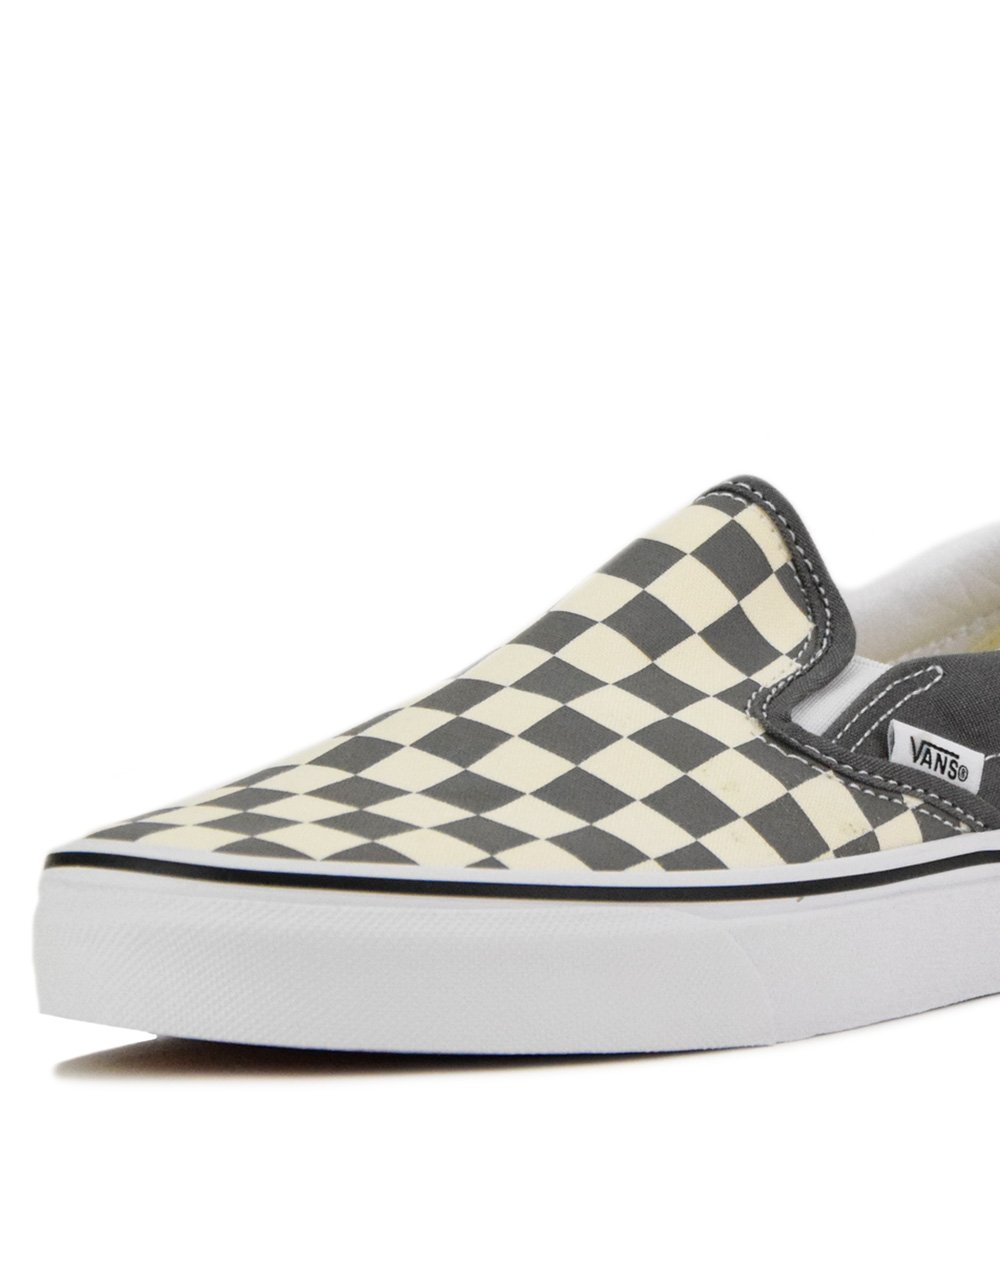 Vans Classic Slip-On (VN0A4BV3TB51) Checkerboard/Pewter-True White